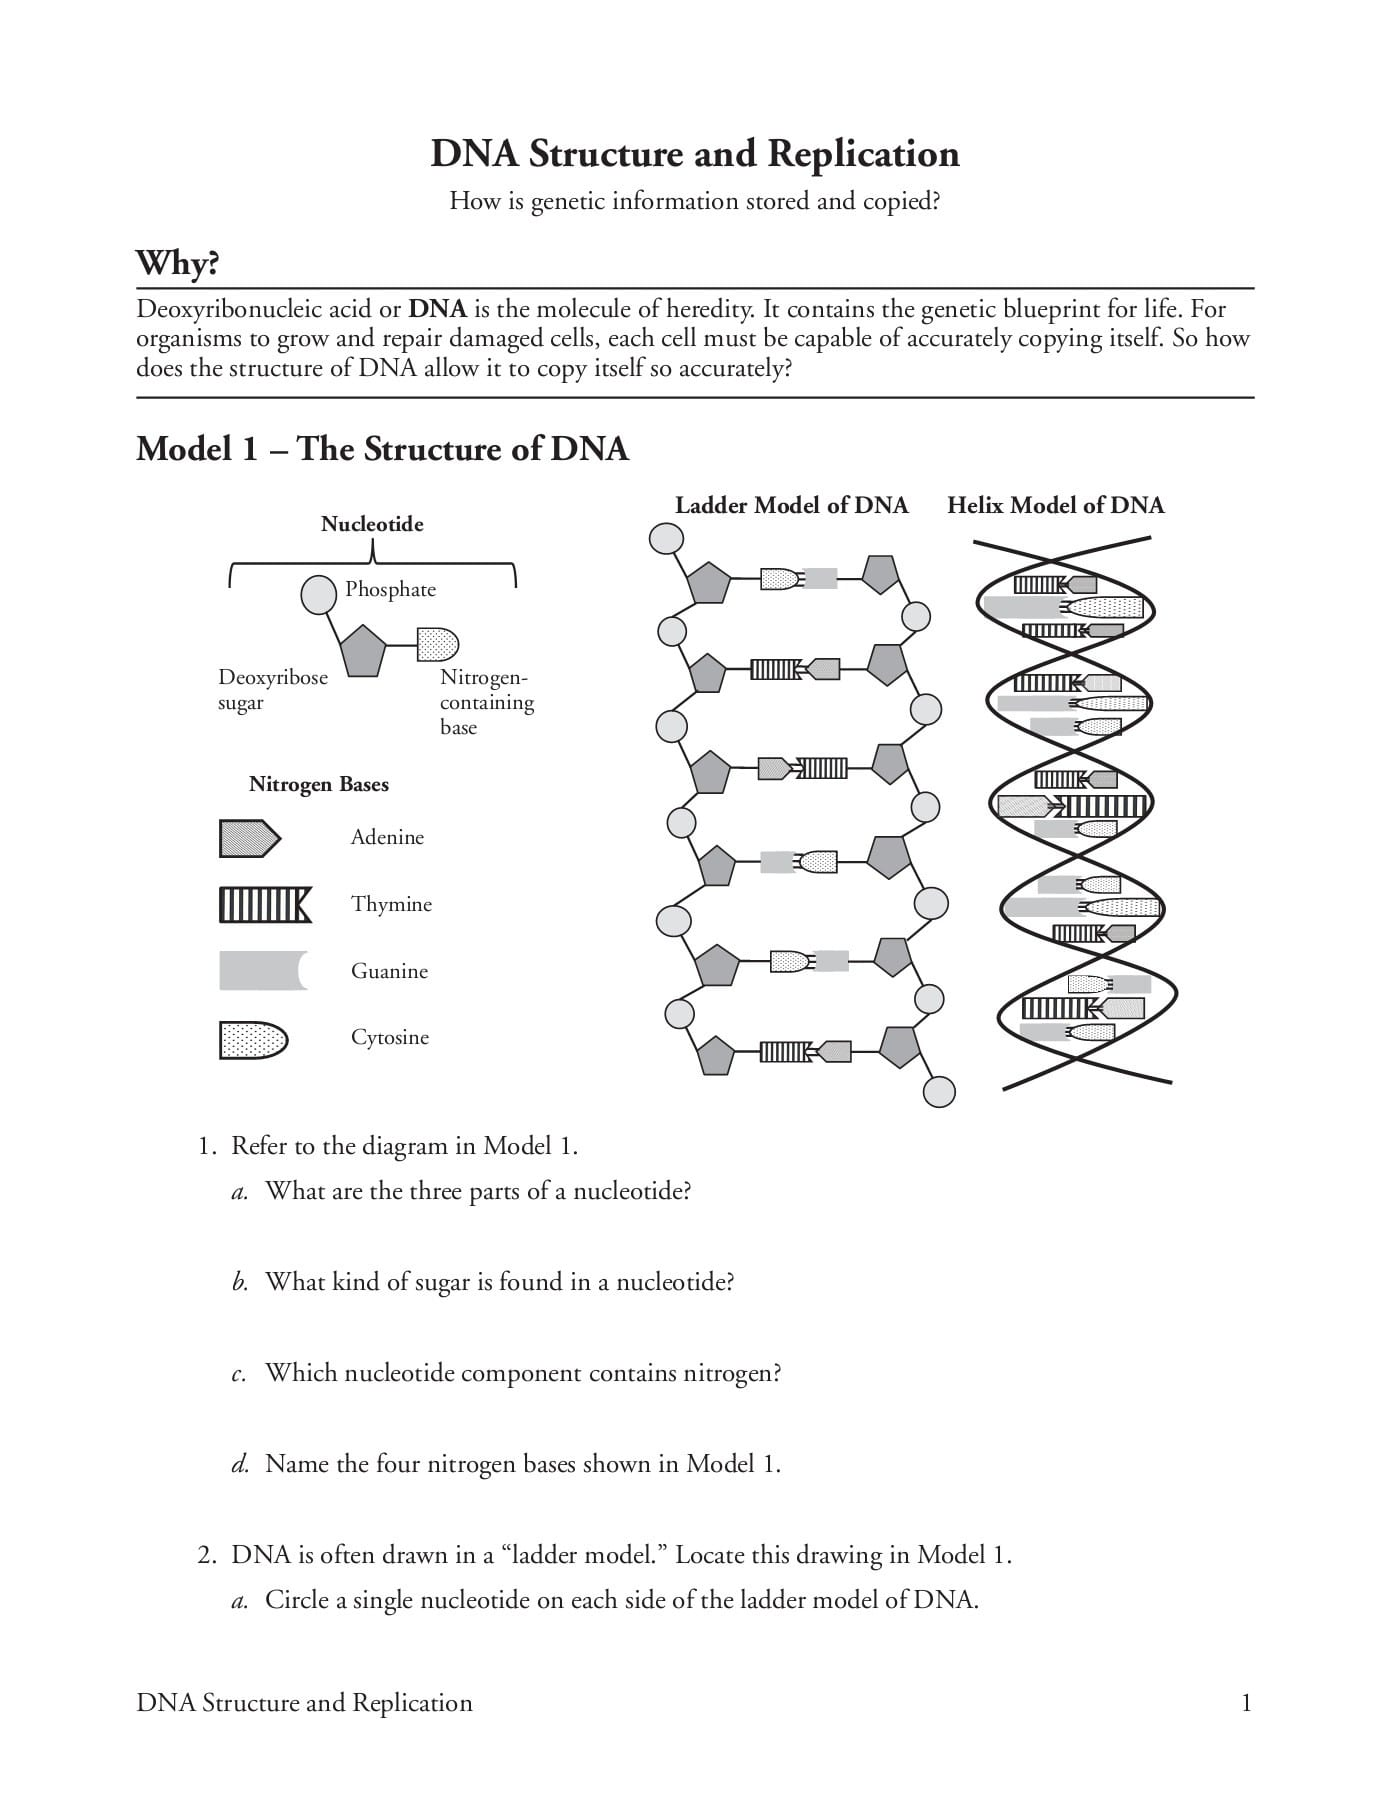 Dna Molecule And Replication Worksheet Answers | db-excel.com